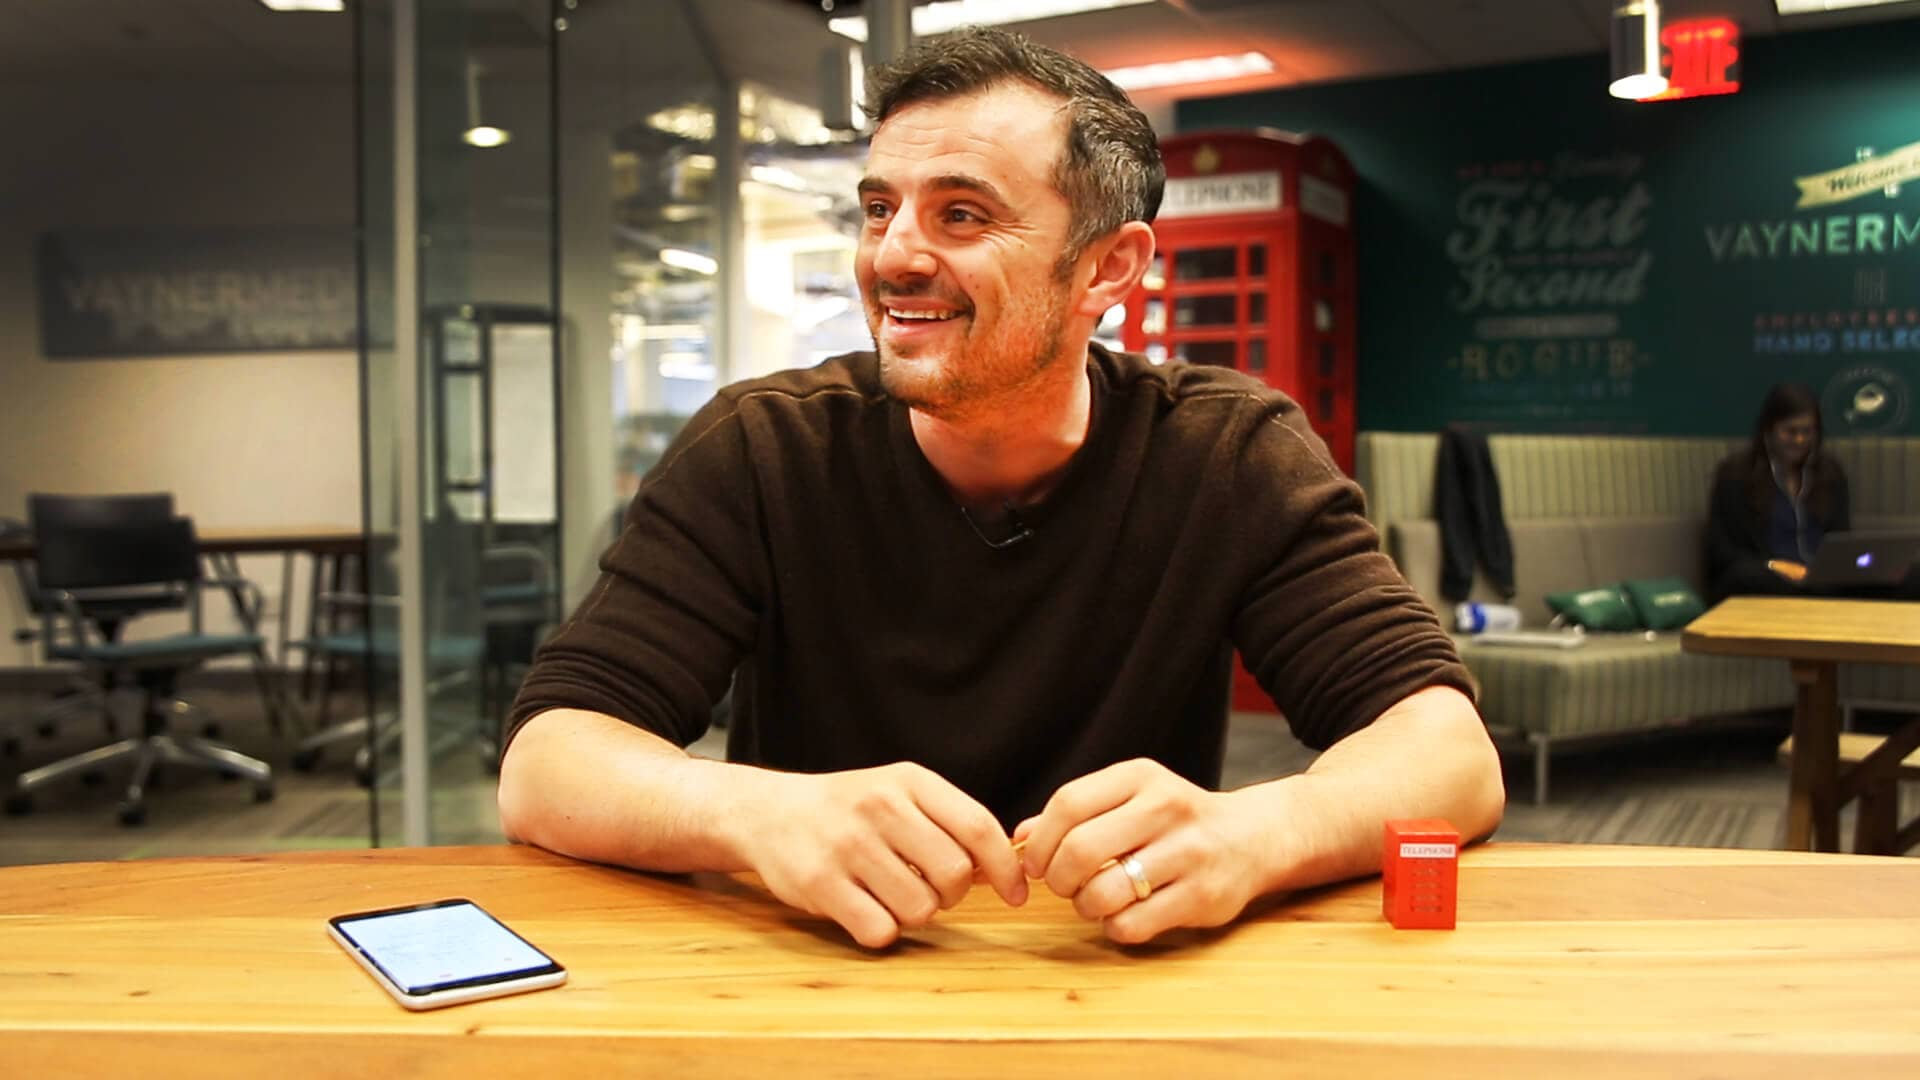 #AskGaryVee Episode 106